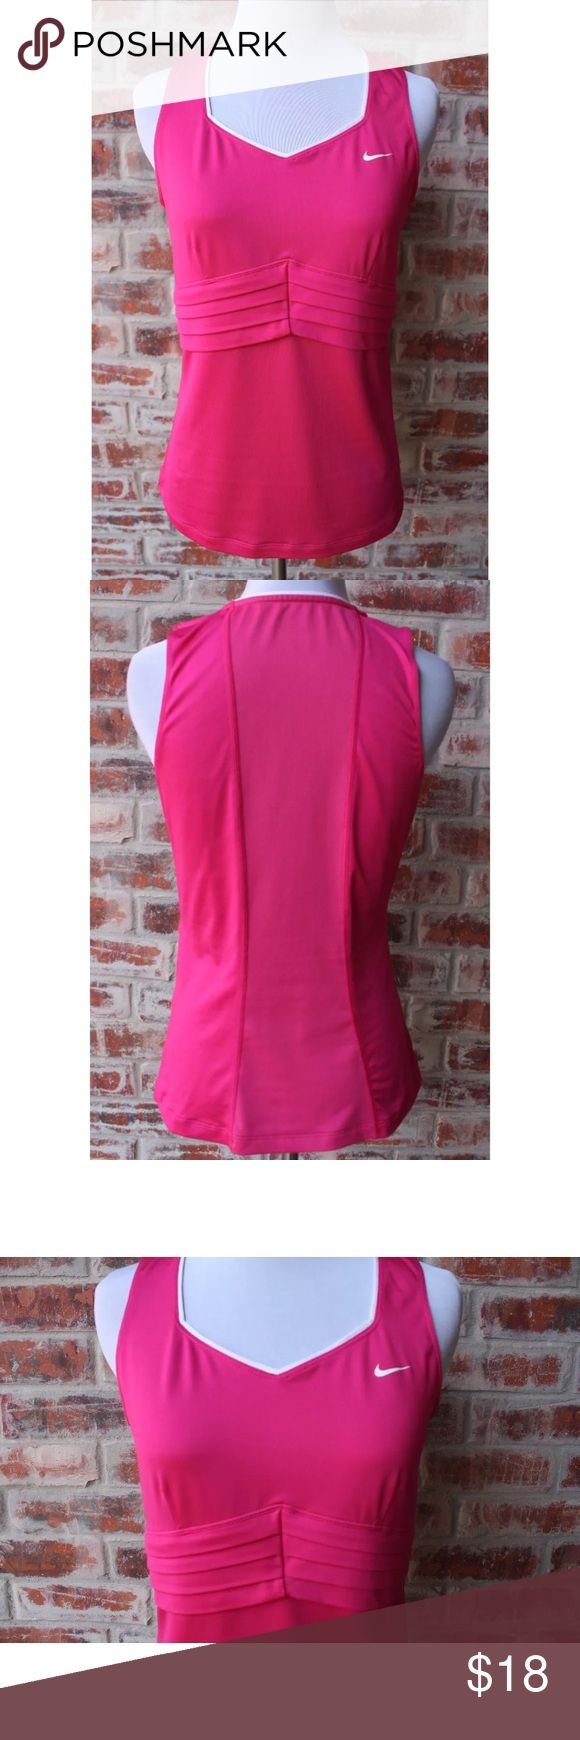 """Nike Dri-Fit Hot Pink Workout Top Sports Shirt M This pink ladies Nike Dri Fit tank top is a size medium and in excellent condition!  It does not have a built in bra.  Measures 16"""" across chest from armpit to armpit without stretching the top and length is 22.5"""". Nike Tops Tank Tops"""